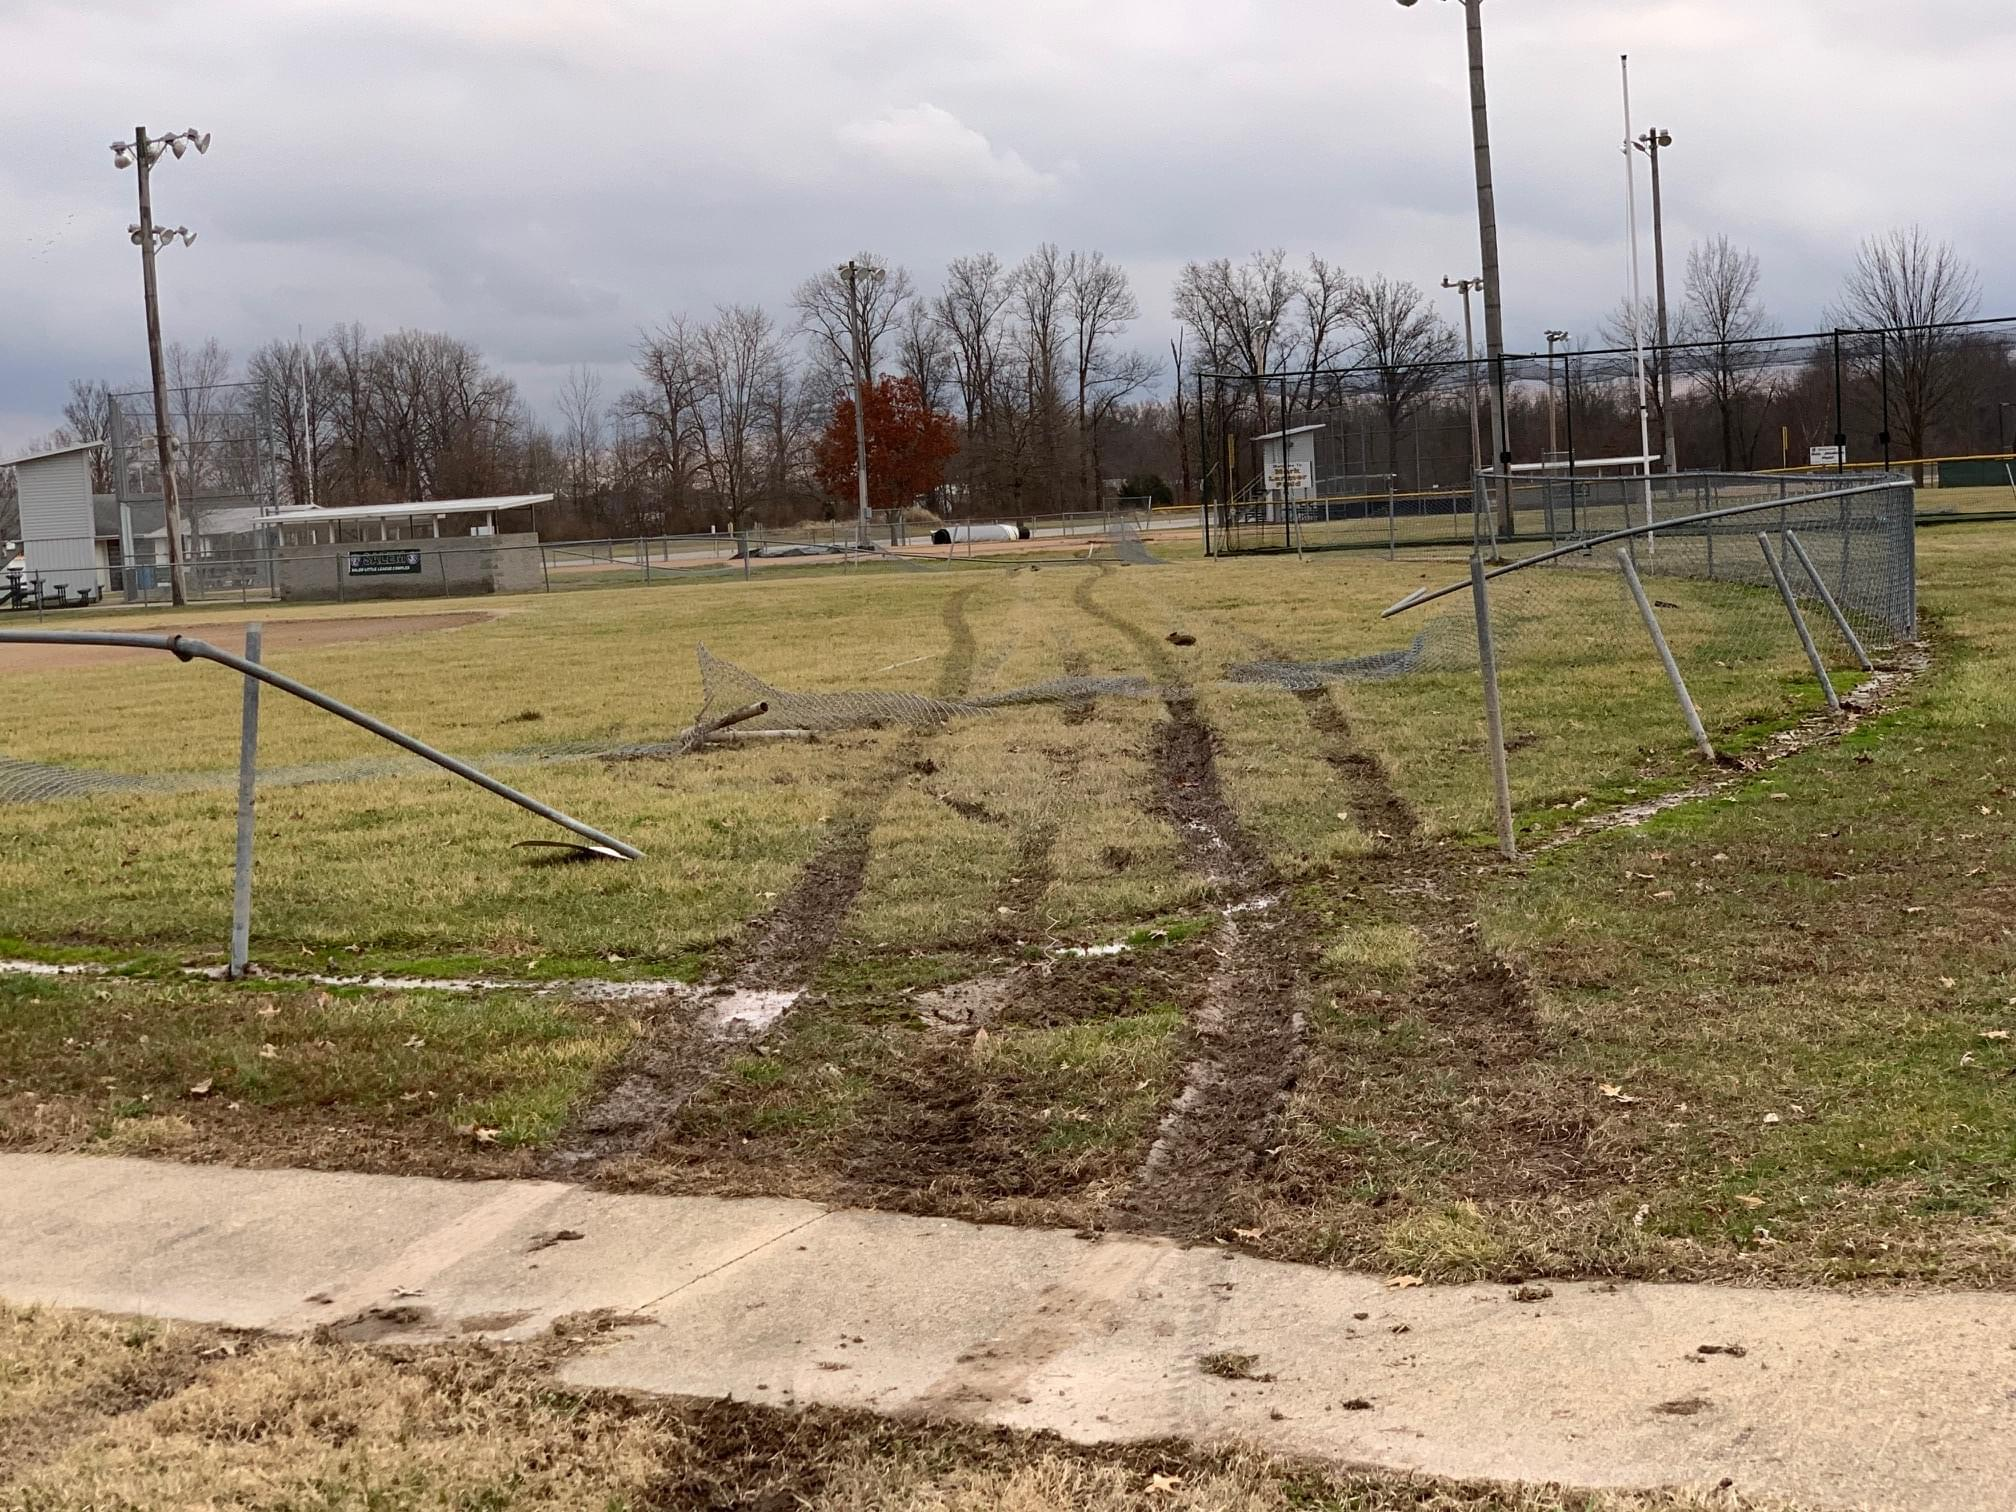 Investigation continues into damage at Little League complex in Salem